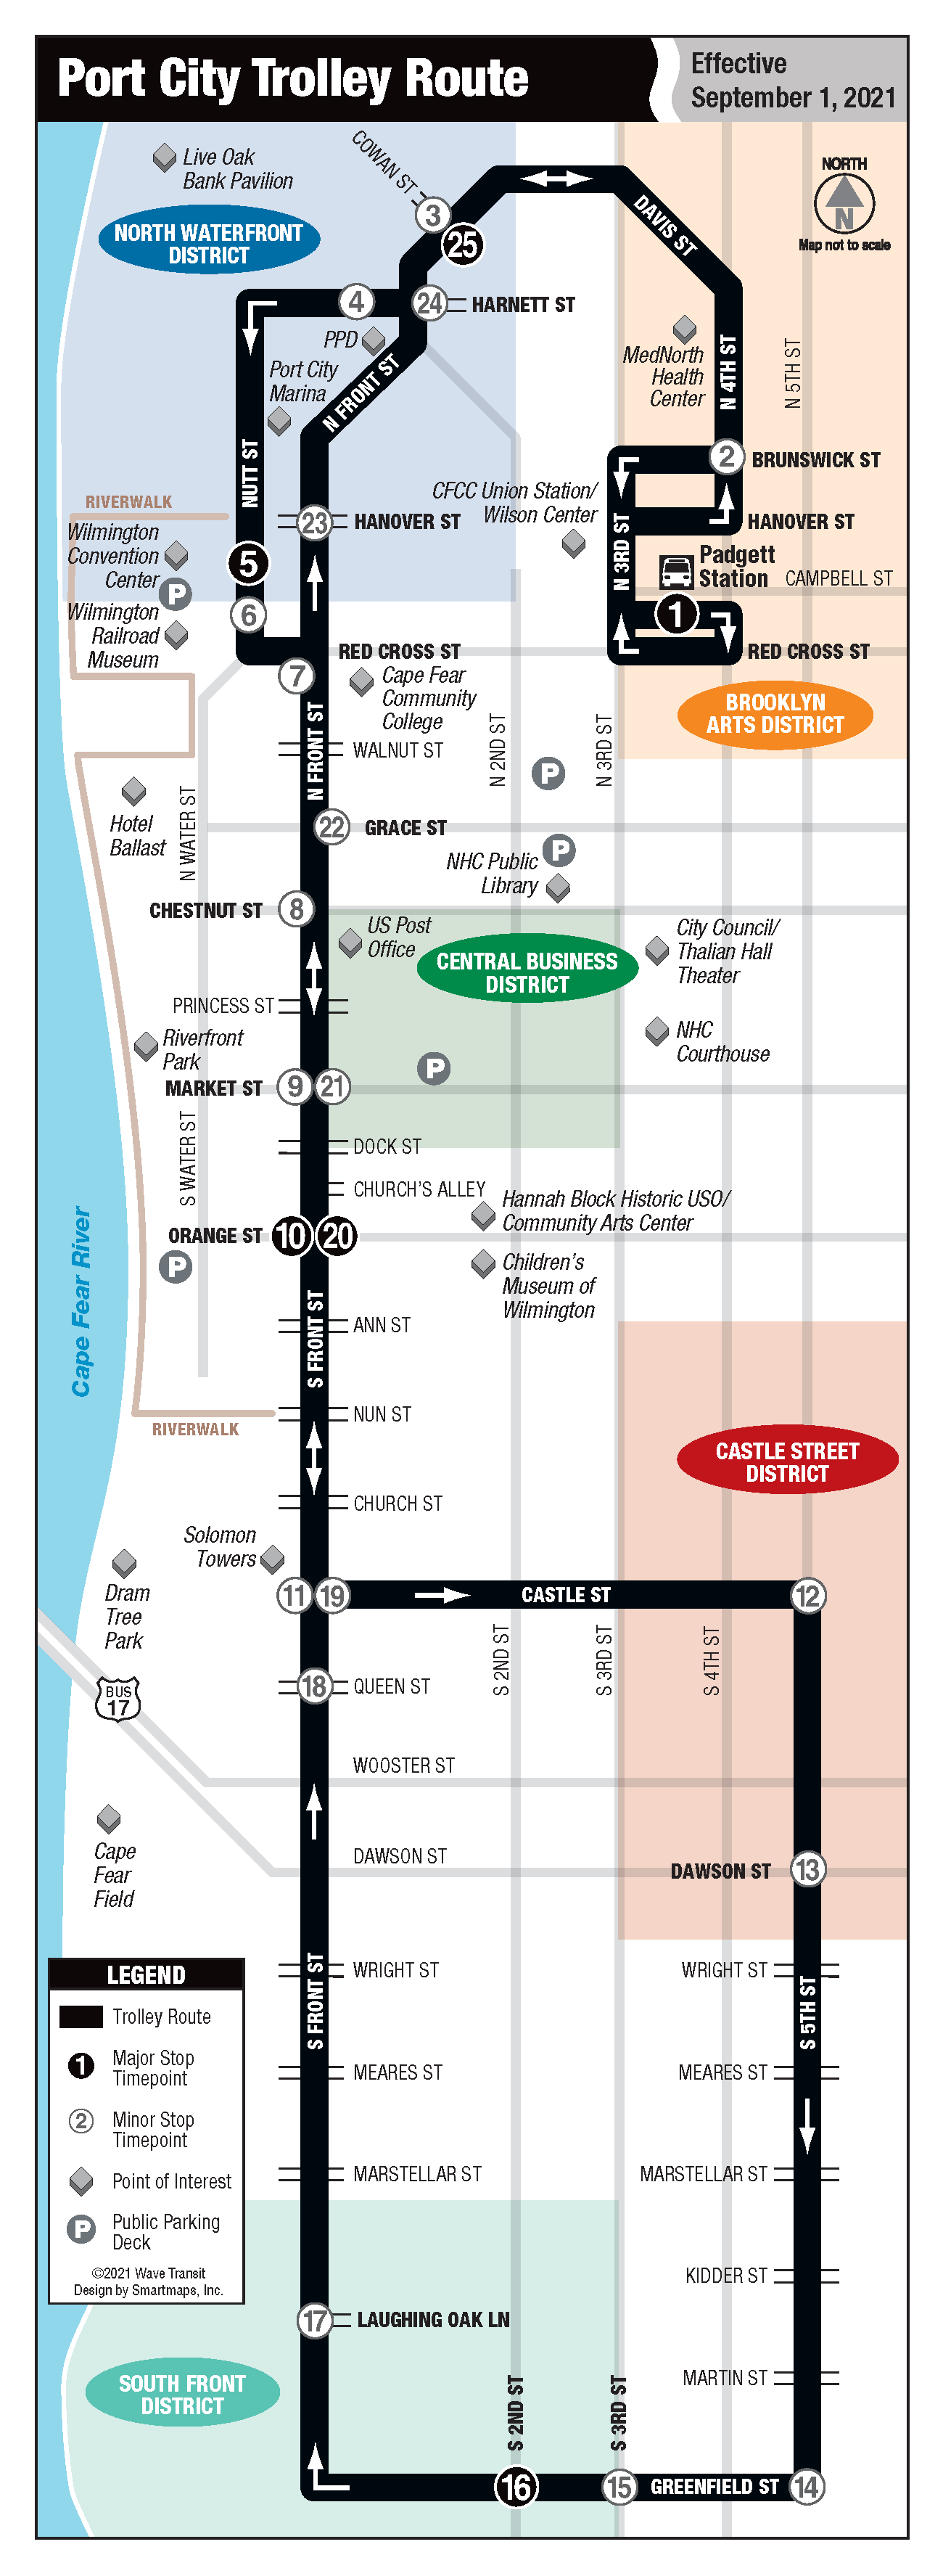 A route map for the Port City Trolley